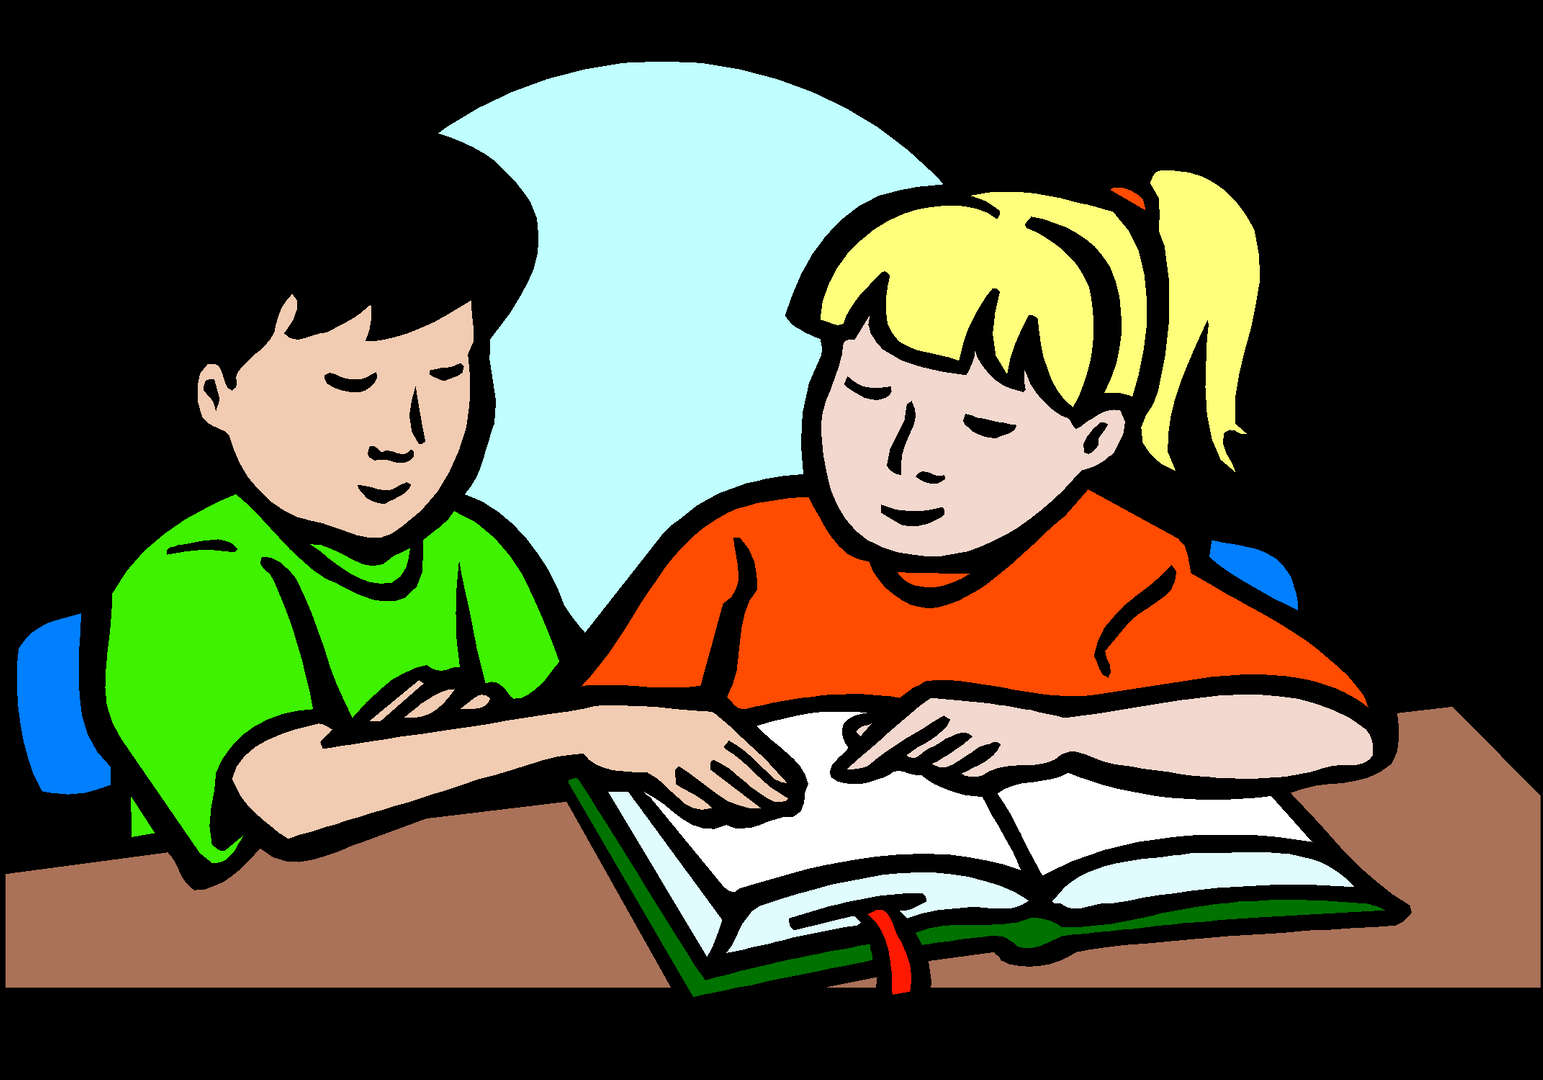 Two students reading a book together